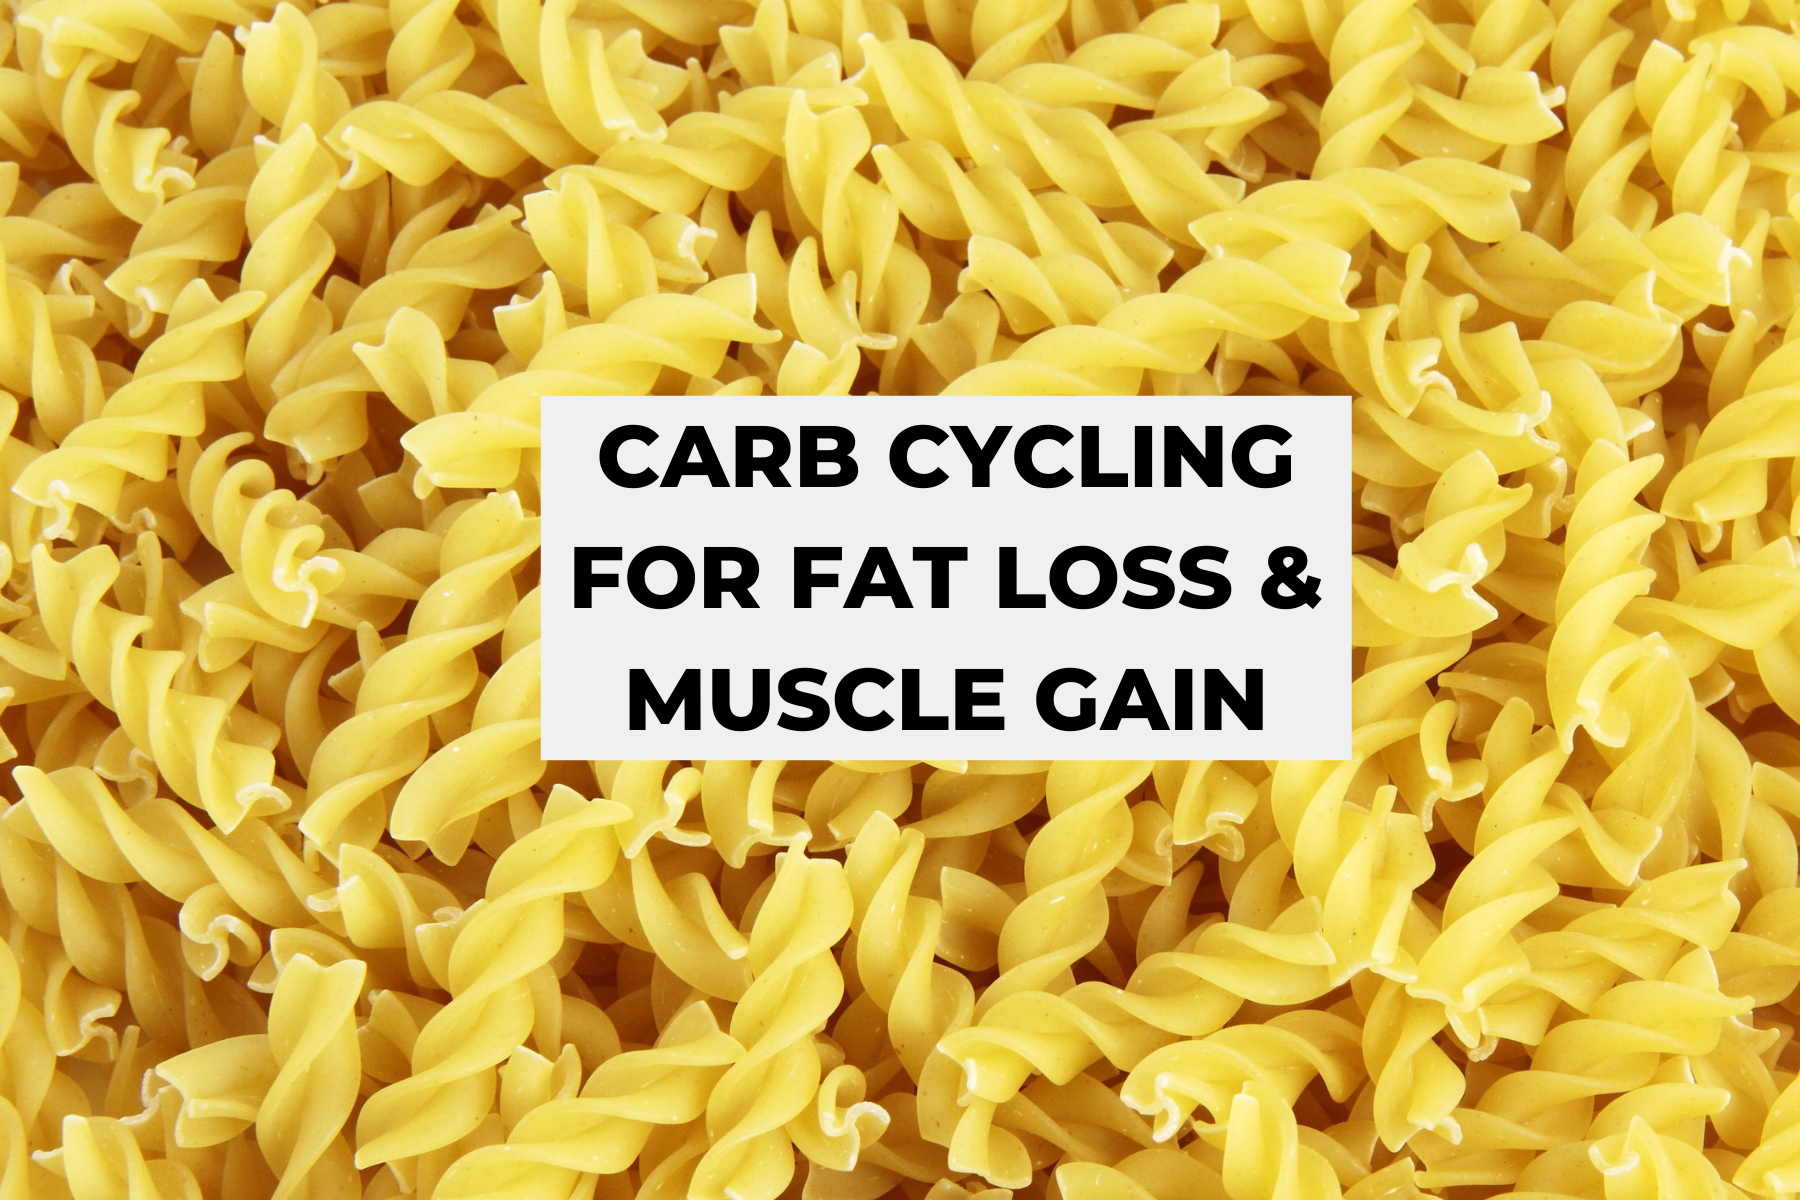 Carb Cycling For Fat Loss